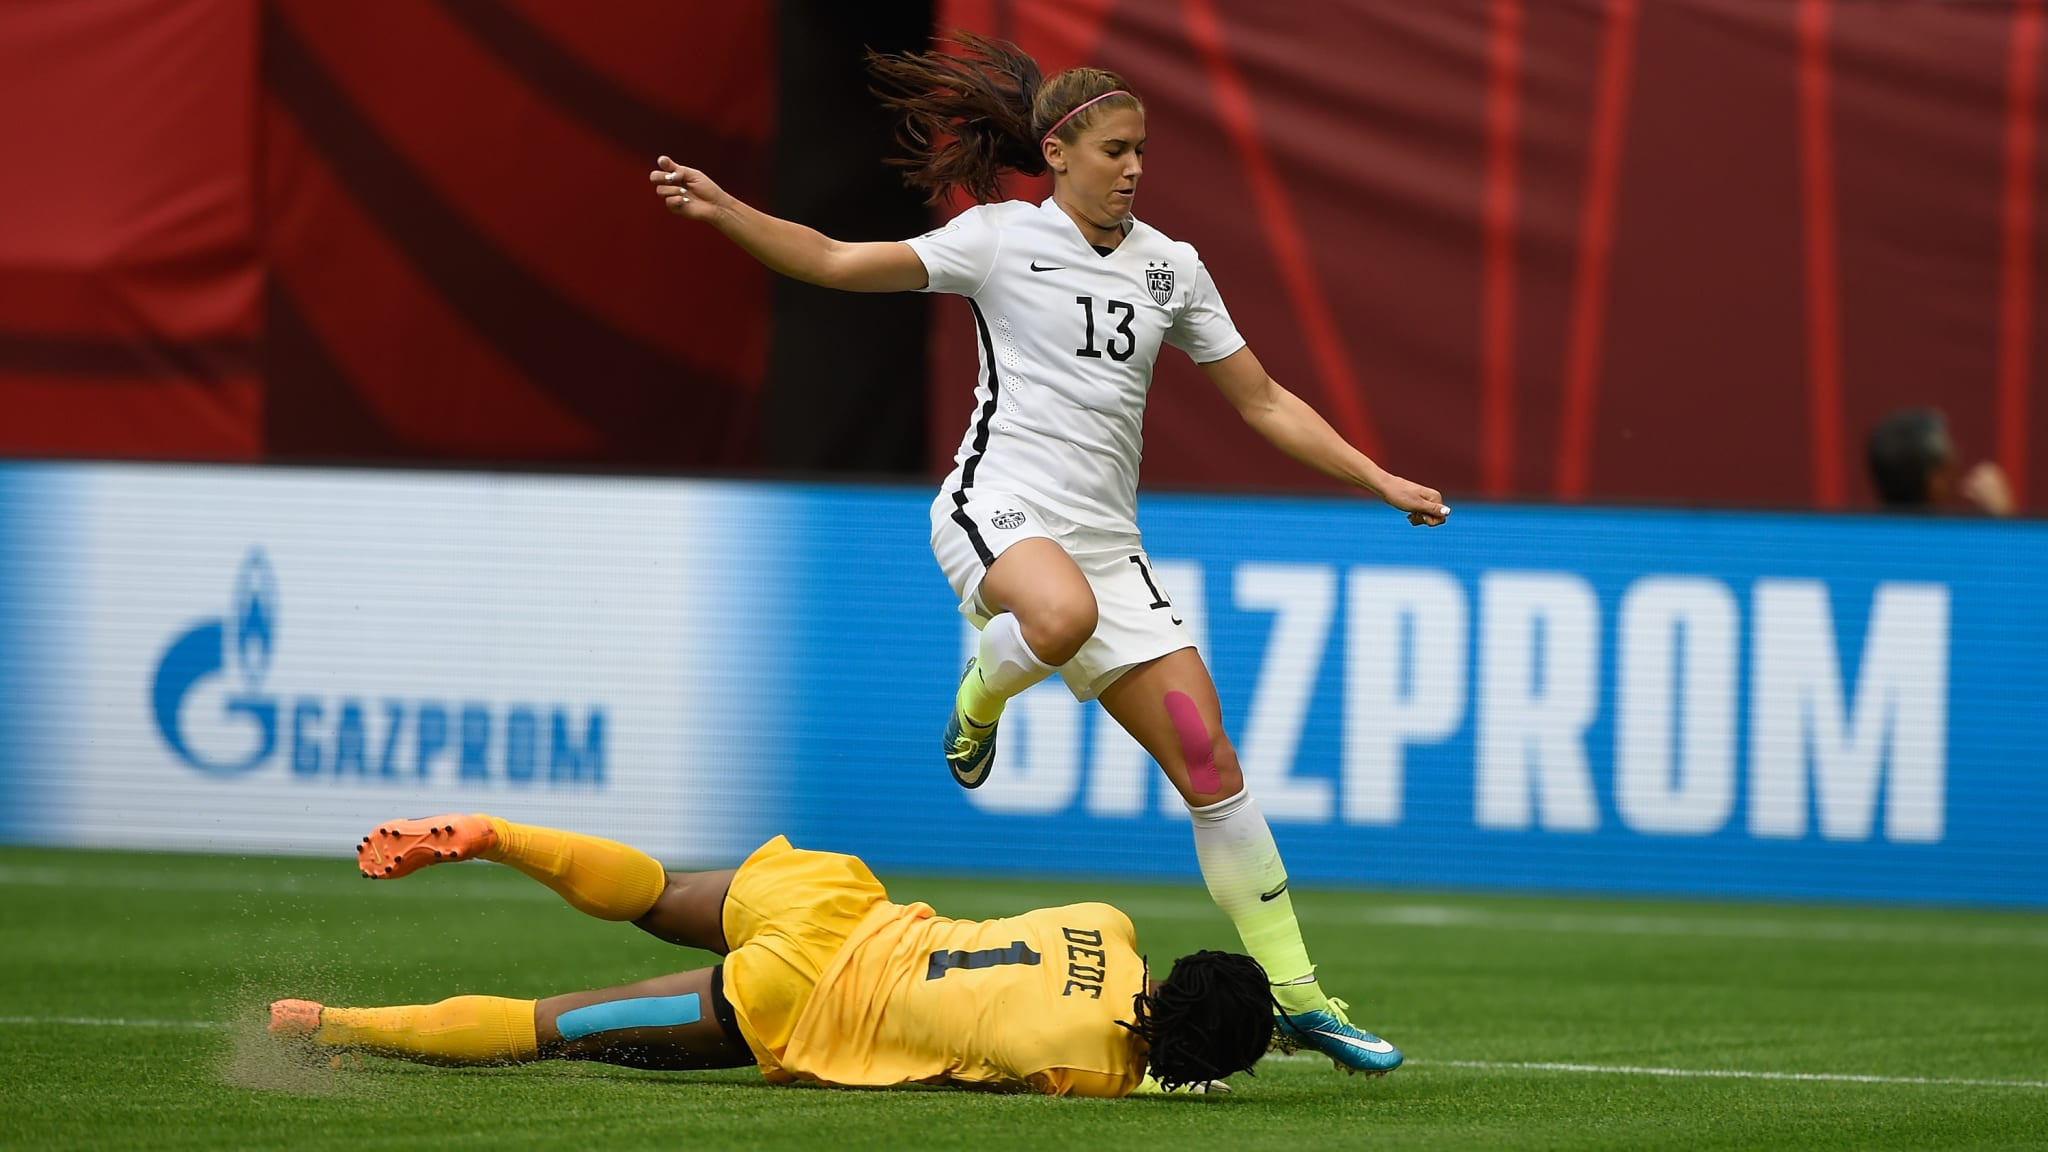 Precious Dede of Nigeria makes a save at the feet of Alex Morgan of USA during the FIFA Women's World Cup 2015 Group D match between Nigeria and USA at BC Place Stadium on June 16, 2015 in Vancouver, Canada.